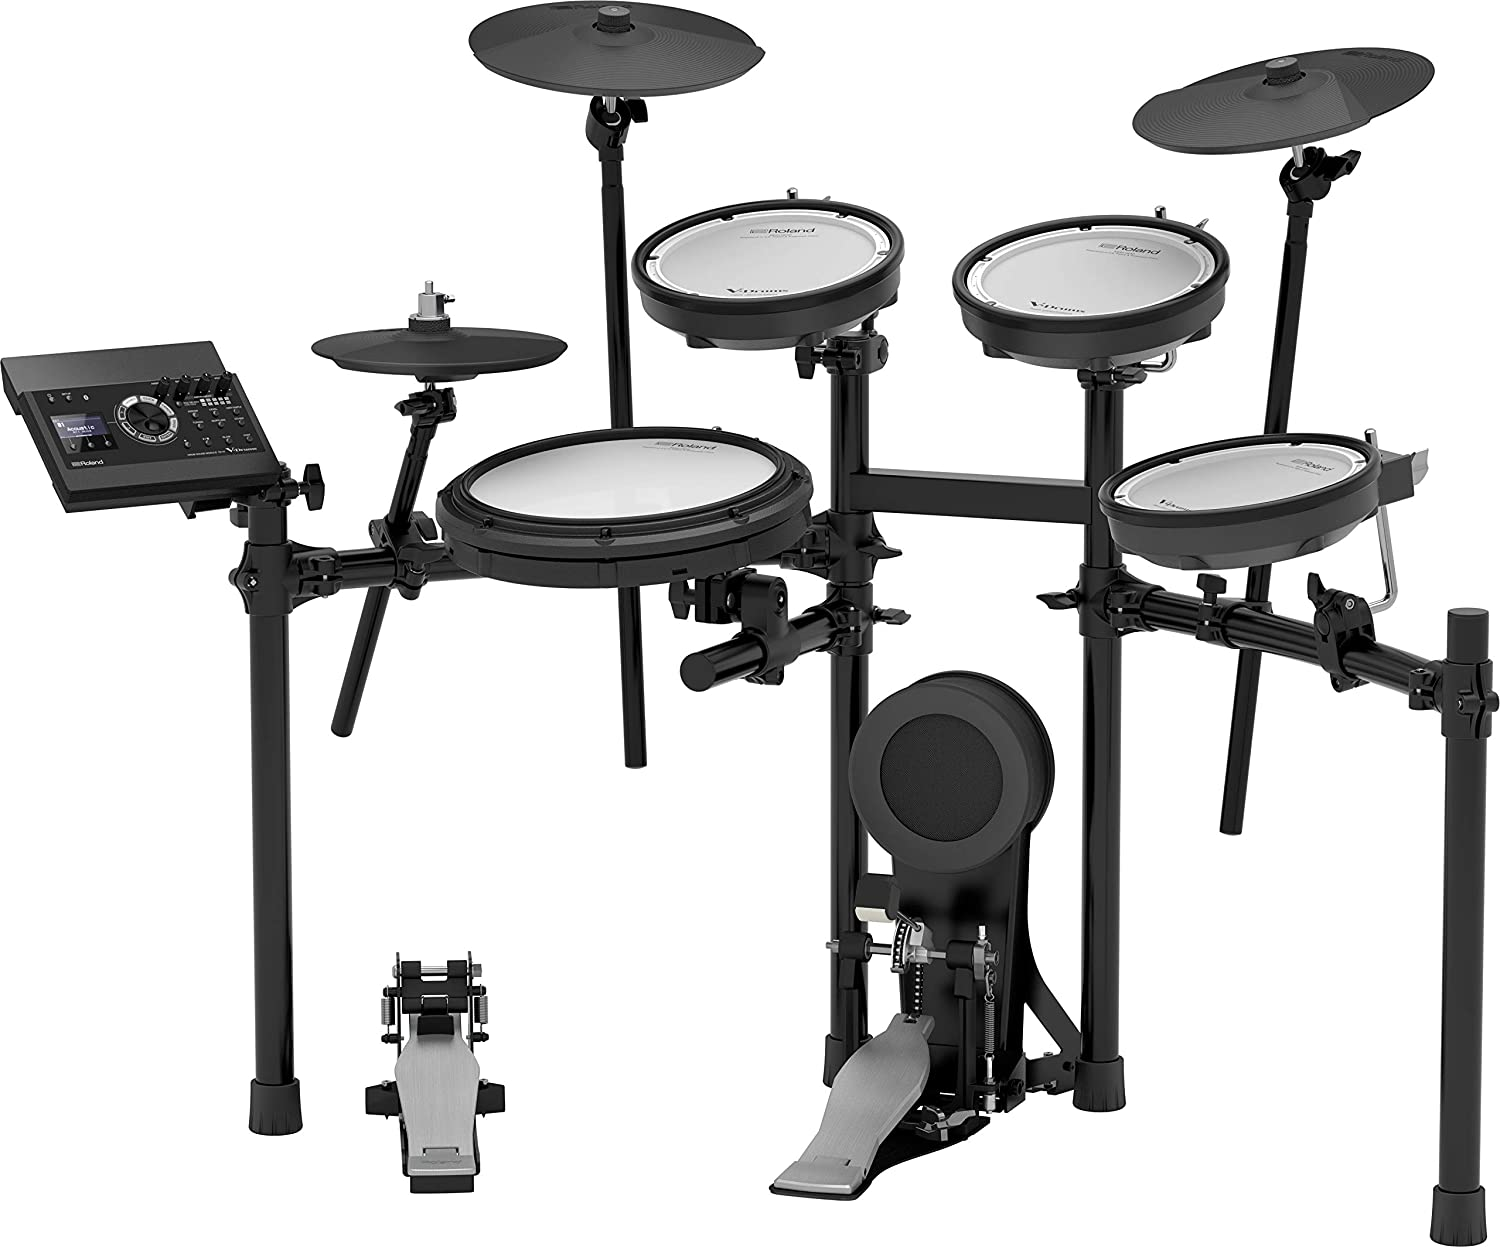 Amazon.com: Roland V-Compact Series Electronic Drum Kit, BLACK, Set (TD-17KV-S): Musical Instruments